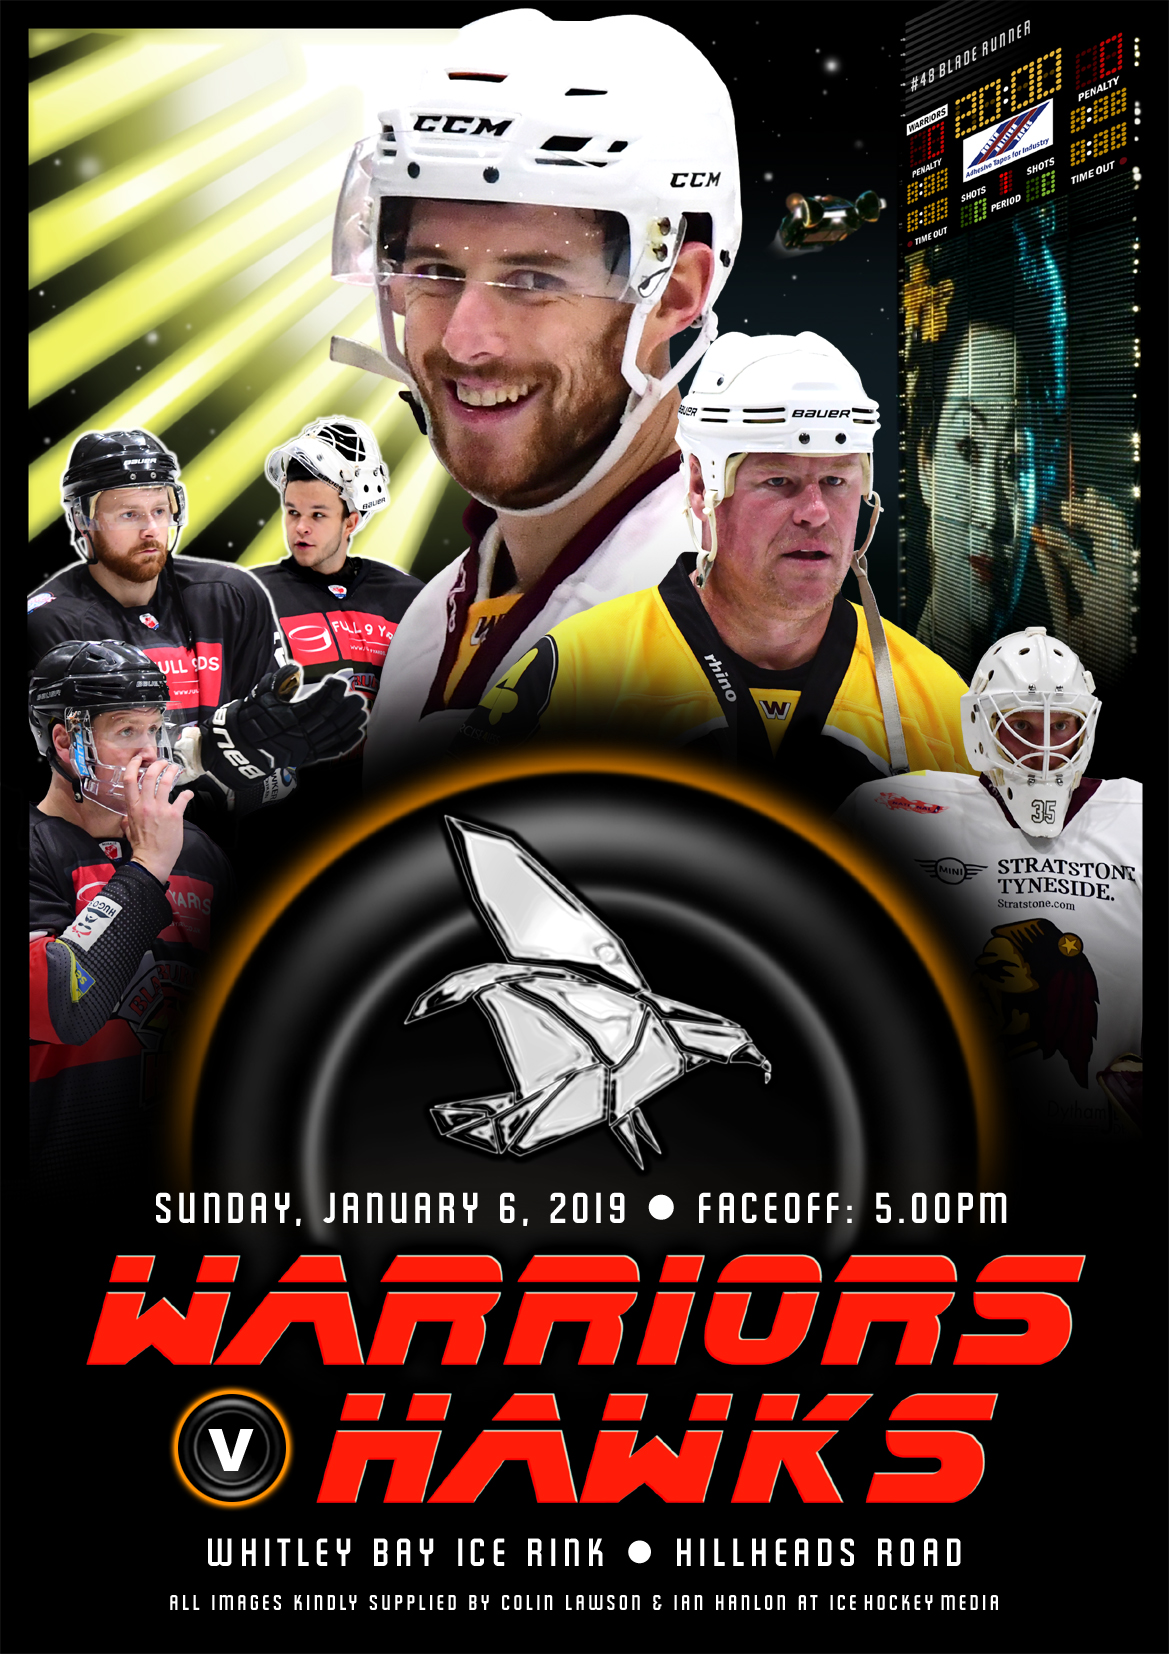 Whitley Warriors vs Blackburn Hawks @ Whitley Bay Ice Rink, Sunday 6 January, face off 5pm